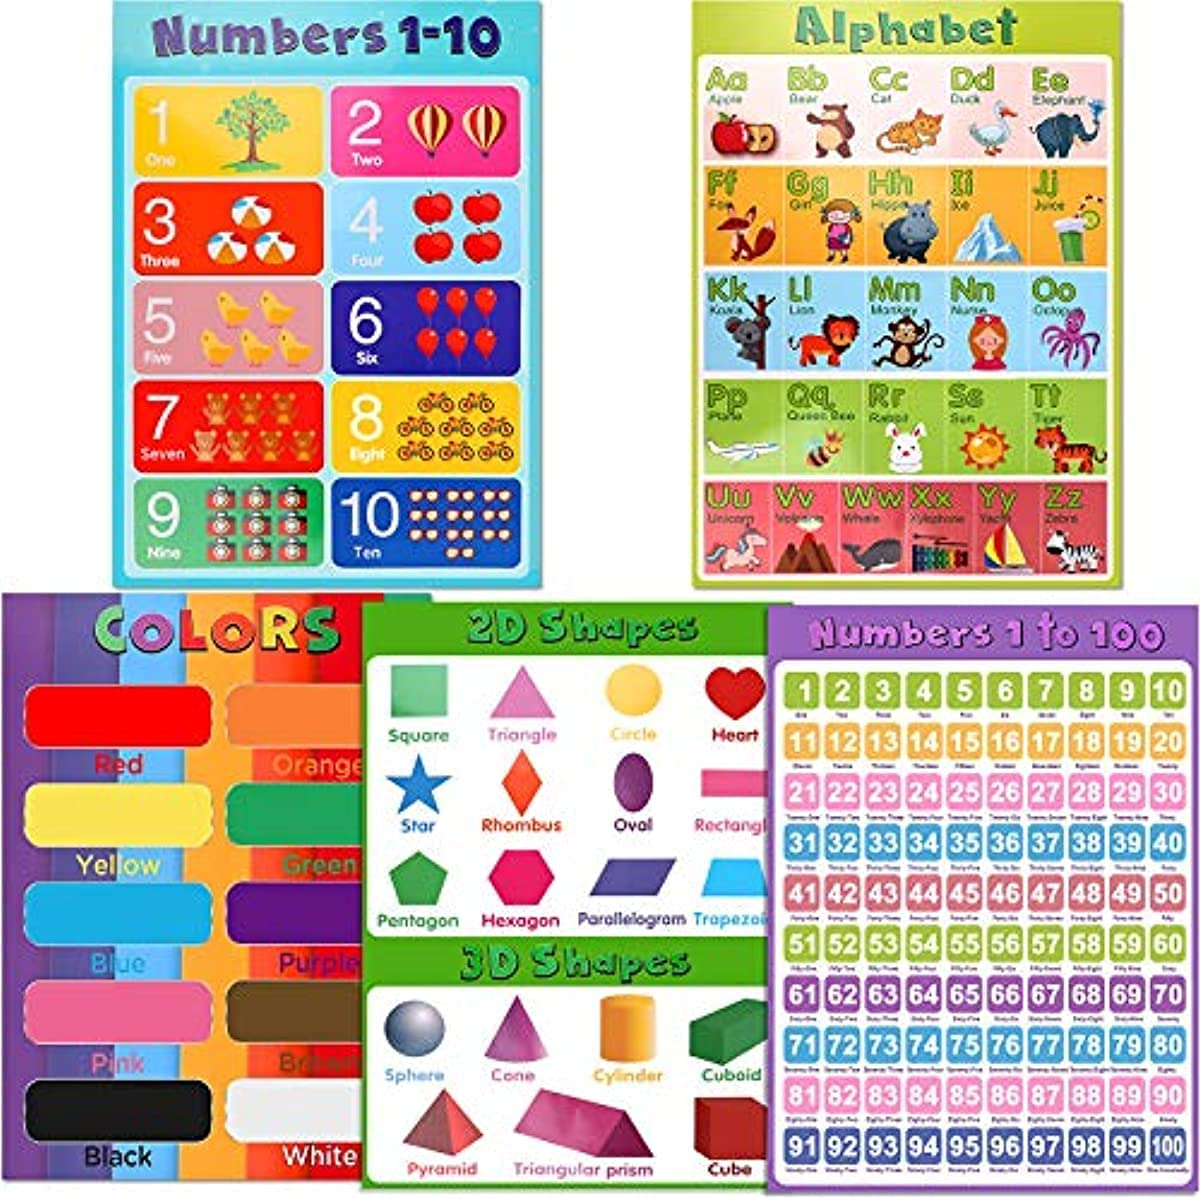 pagsundog Educational Posters For Learning Homeschool Preschool SEAL limited product Wholesale